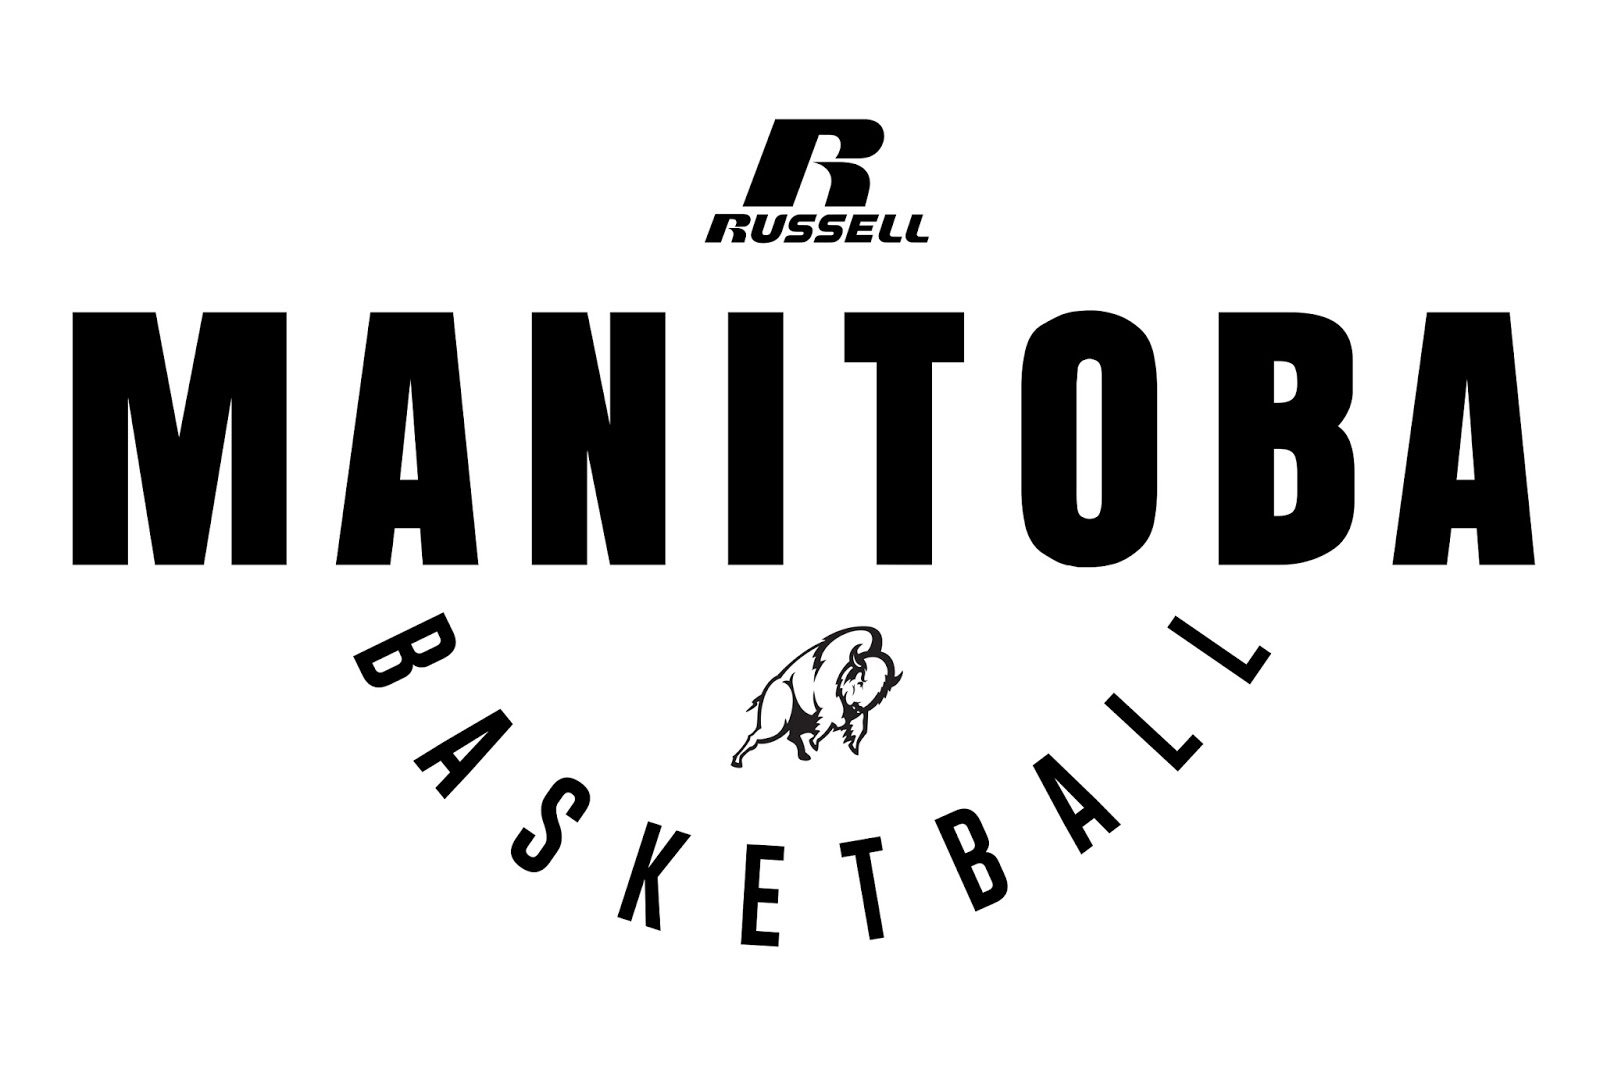 15u Male Assistant Coach Daron Leonard Basketball Manitoba 3x3 Super Set Circuit Workout Working It Out Pinterest Both A Preparatory Program And Academy Triumph 204 Which Includes Teams That Compete Locally In The Fall On Aau During